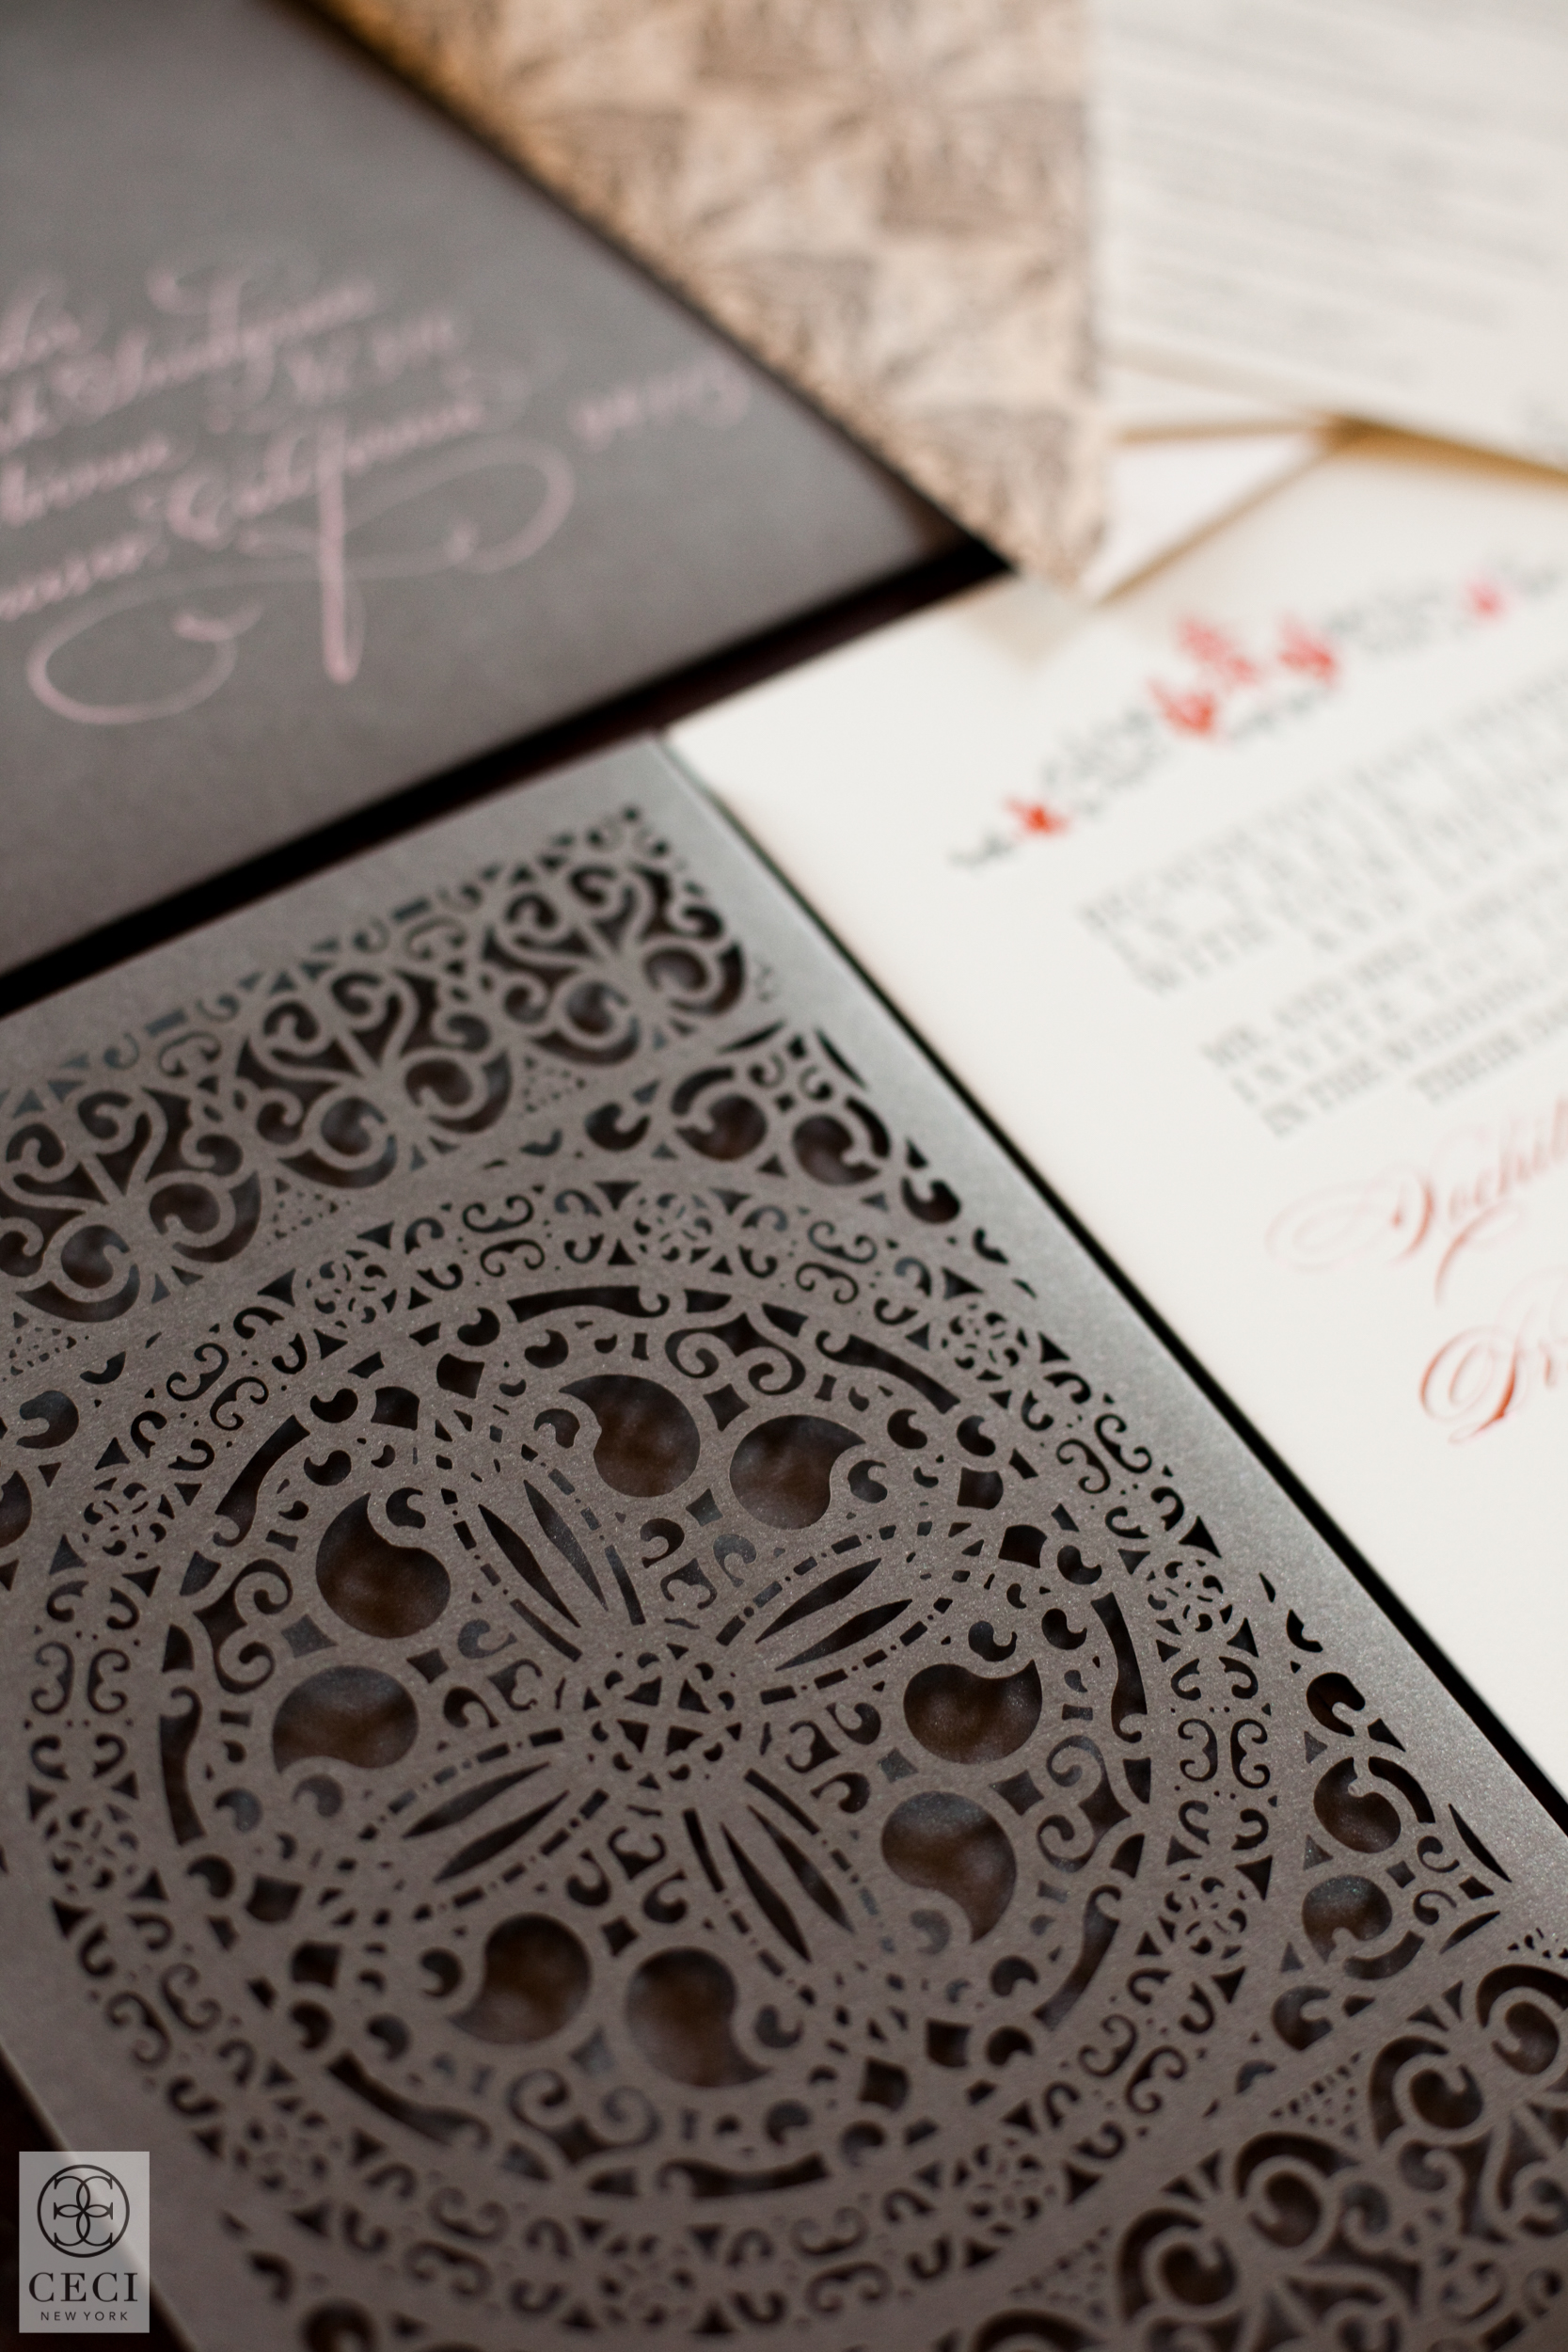 Ceci_New_York_Custom_Luxury_Wedding_LaserCut_Stationery_Personalized_Couture_Foil_Stamping_Mexico_Otomi_Chic_-3.jpg